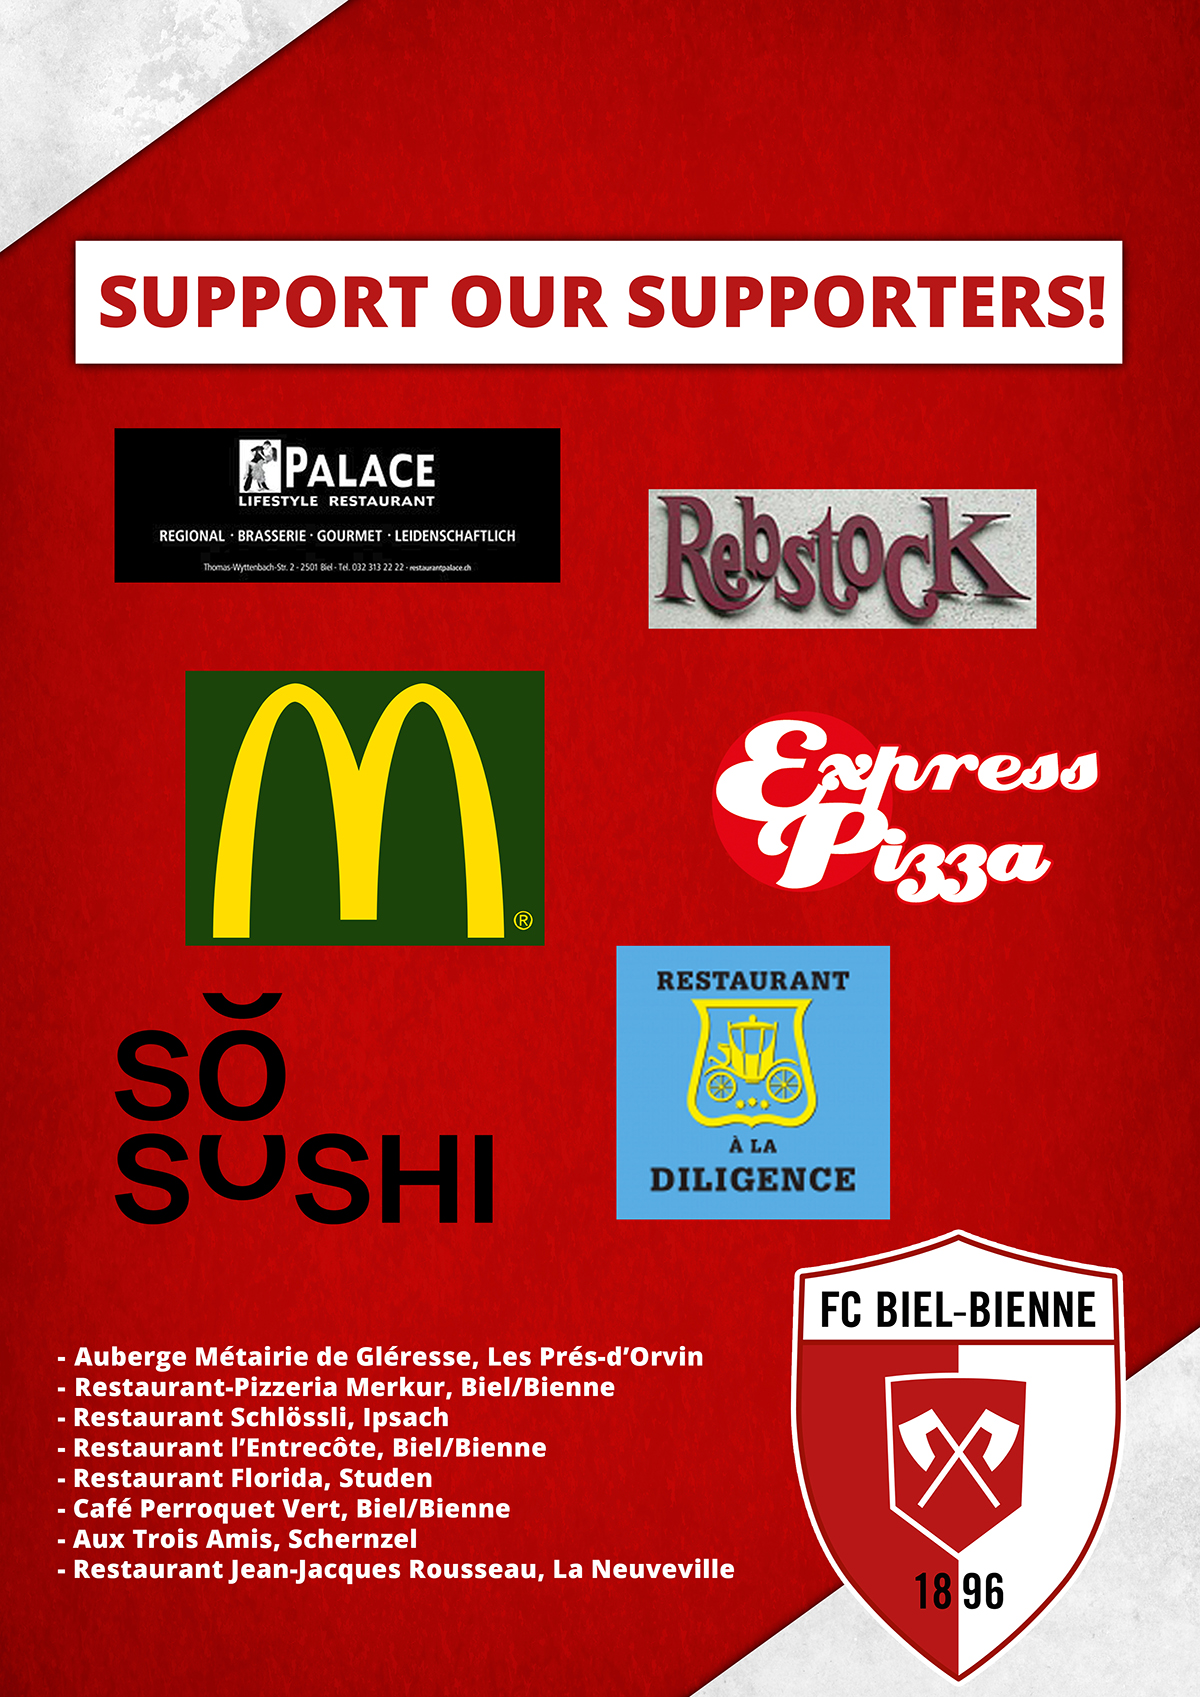 Support our Supporters!